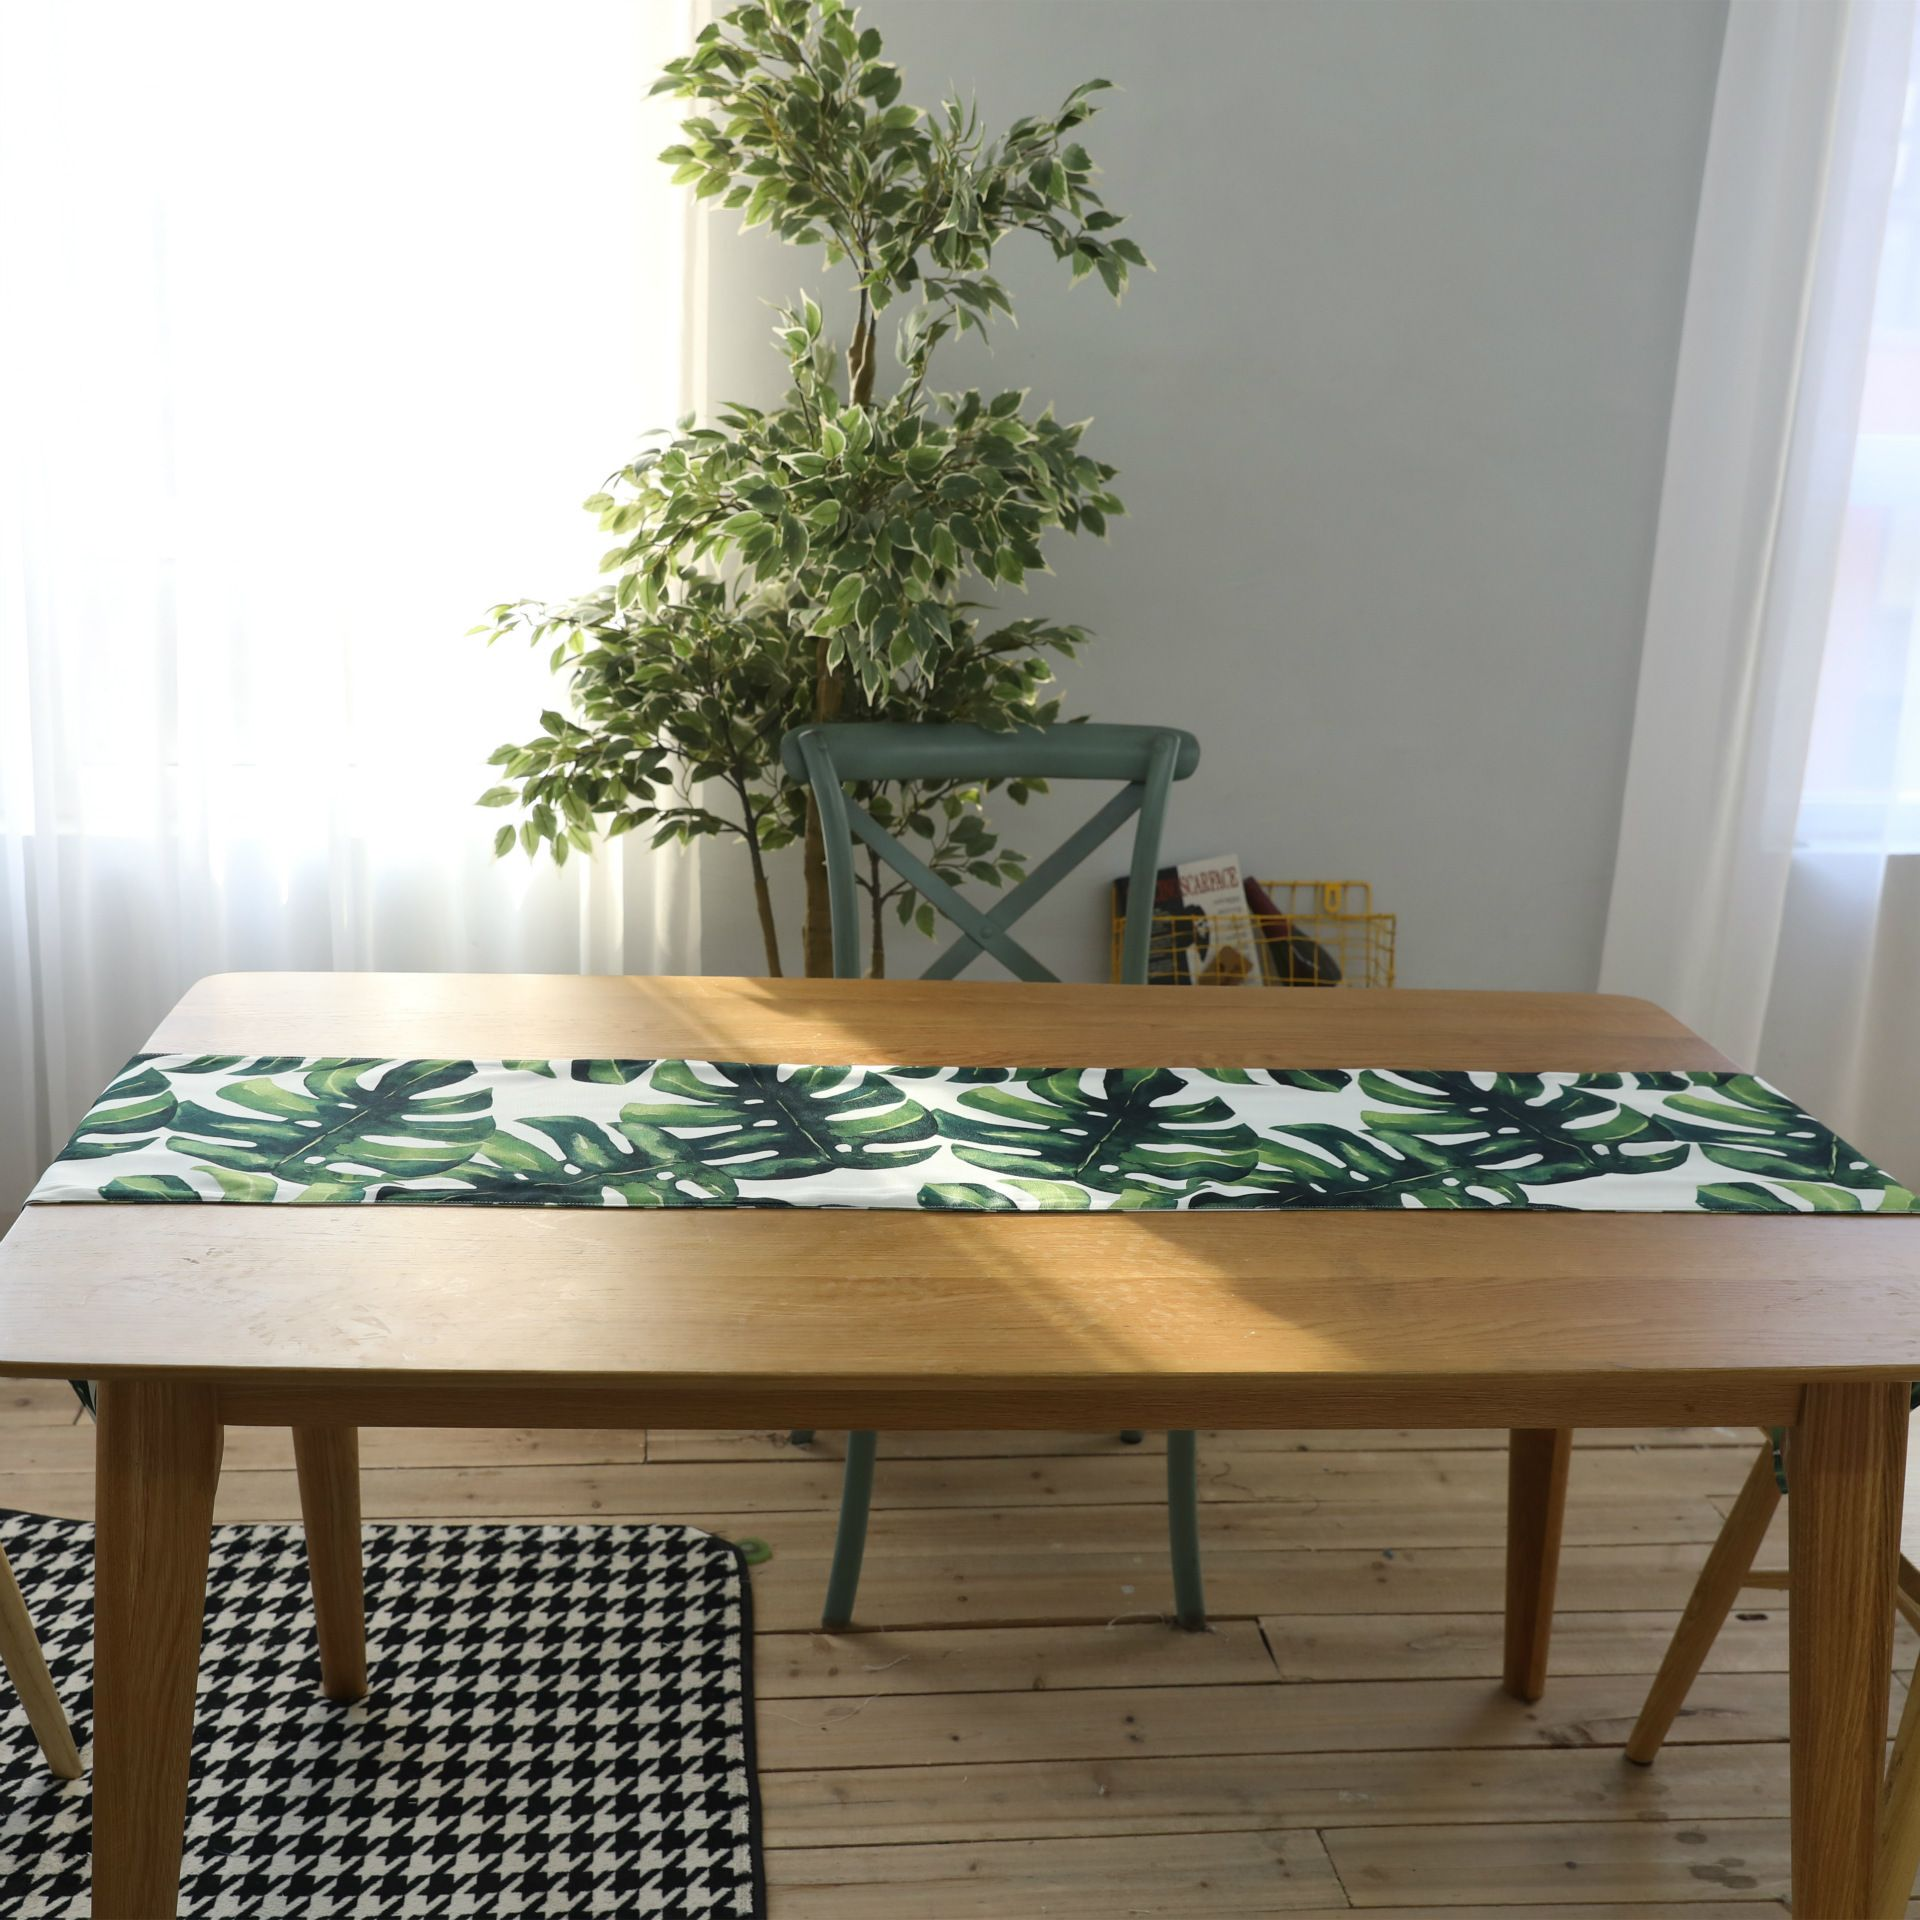 Linen Cotton Washable Handmade Tropical Palm Leaf Table Runners For Home Party Wedding Table Decoration 30 X 200cm Green Leaf Table Modern Table Runners Tropical Table Runners